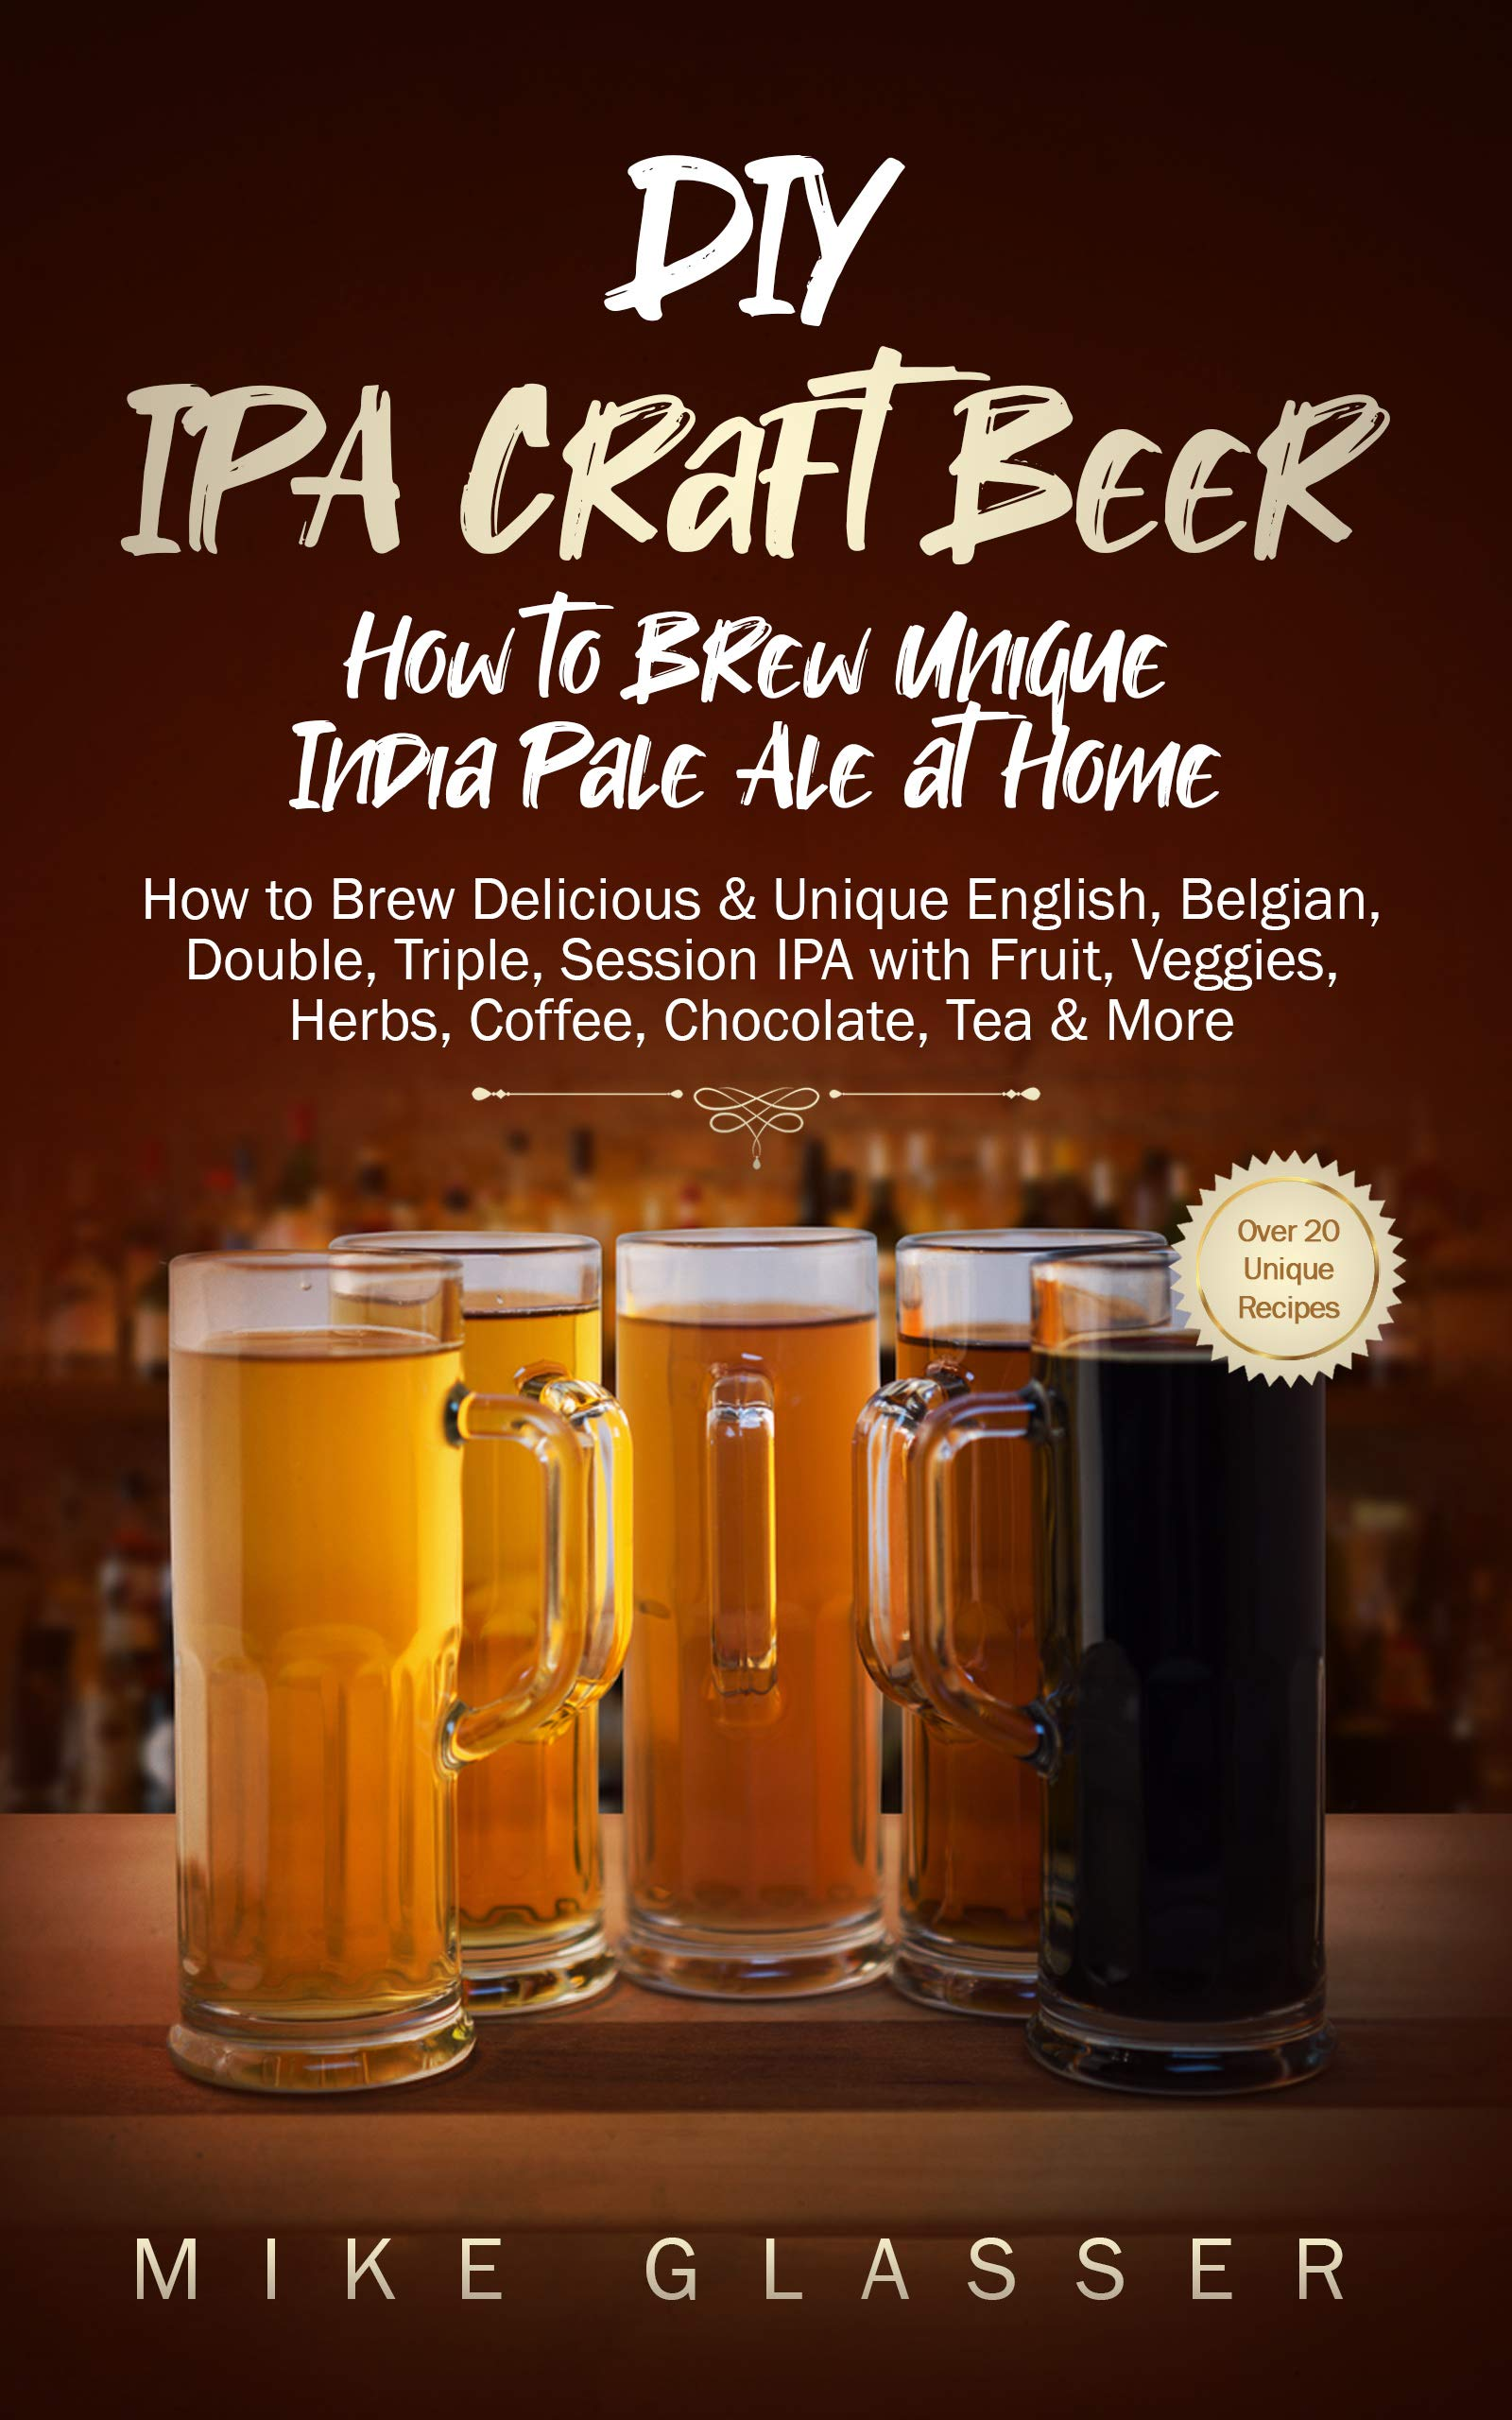 Download DIY IPA Craft Beer - How To Brew Unique India Pale Ale At Home: How To Brew Delicious & Unique English, Belgian, Double, T... 